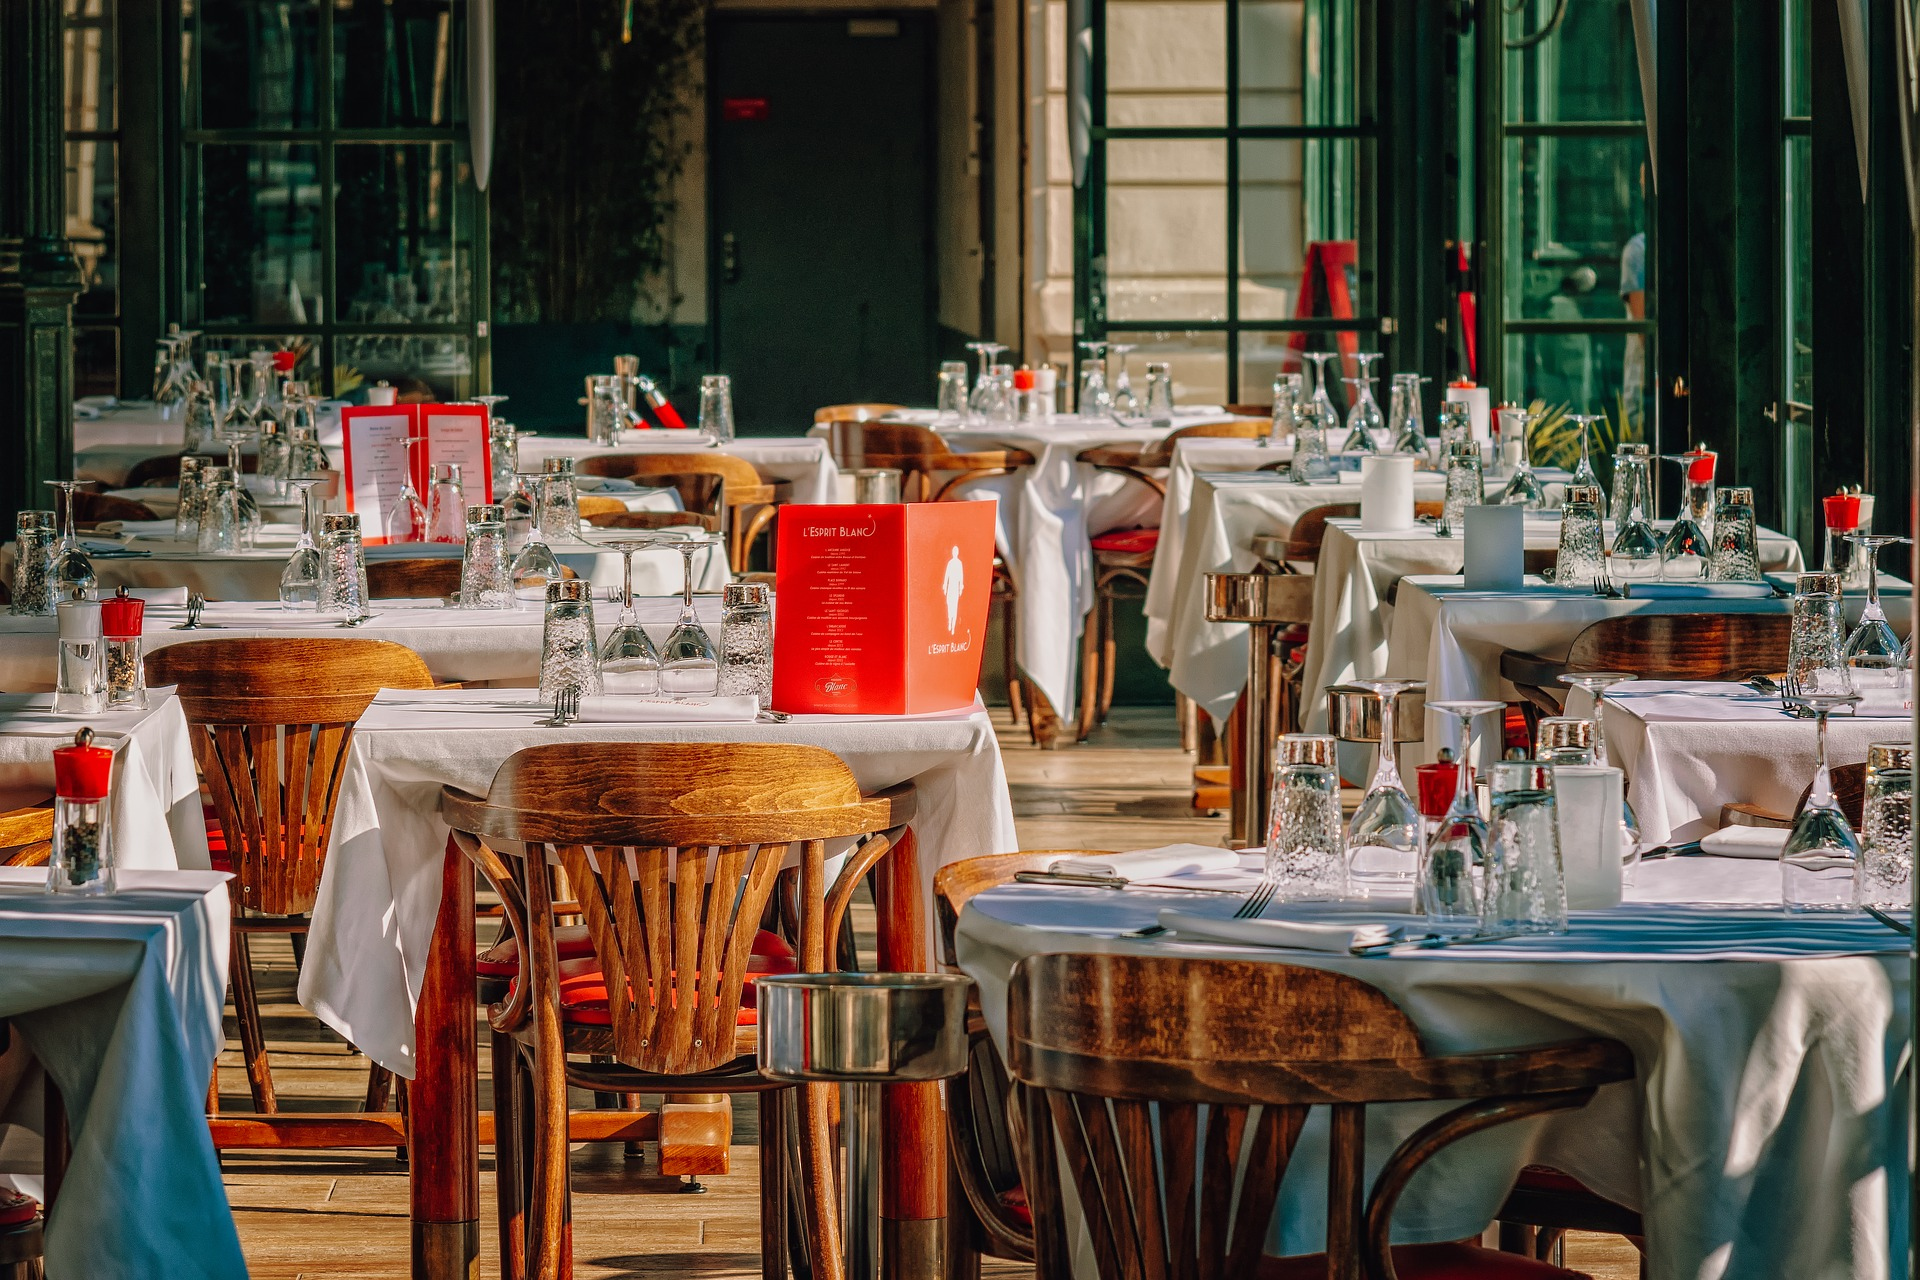 Ideas For Decorating Restaurant Tables To Impress Customers